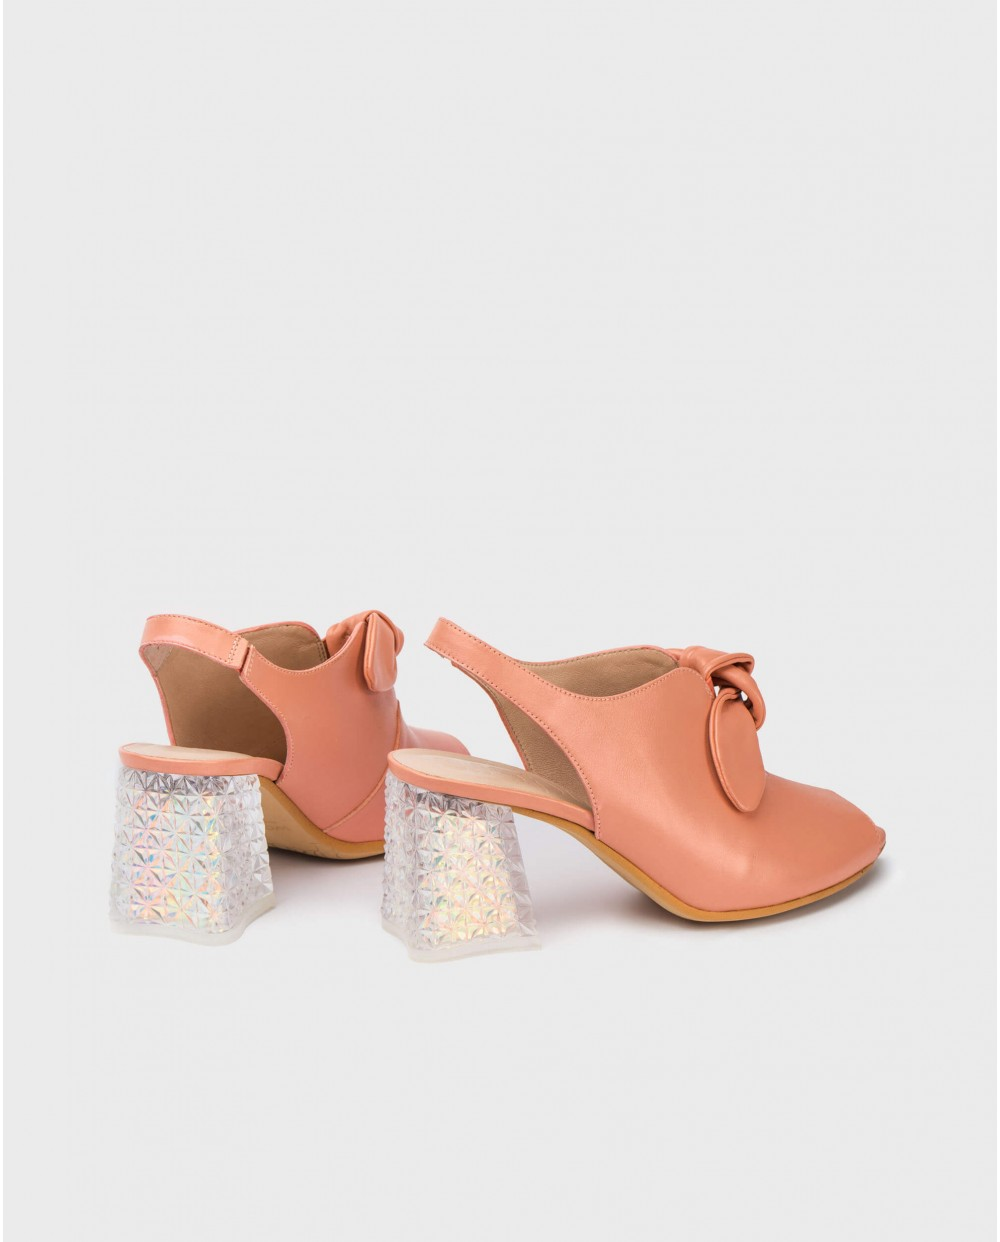 Wonders-Heels-Pee/ toe with bow